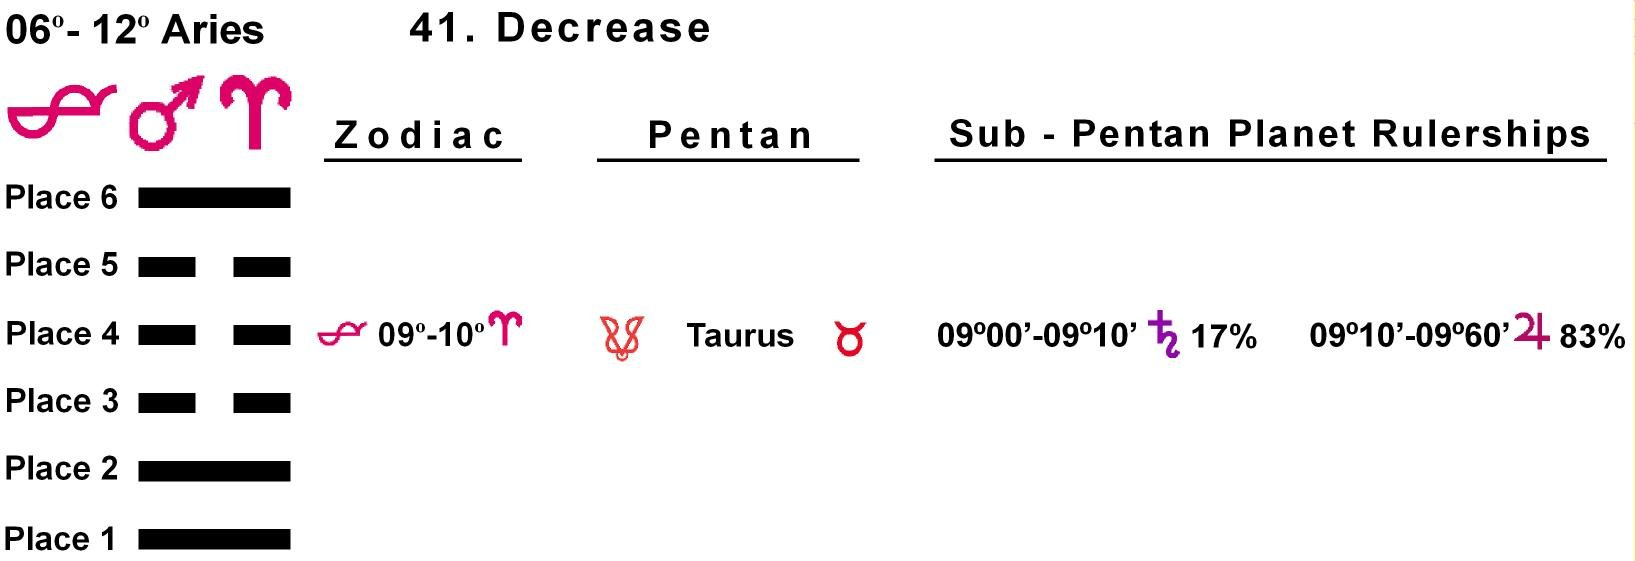 Pent-lines-01AR 09-10 Hx-41 Decrease